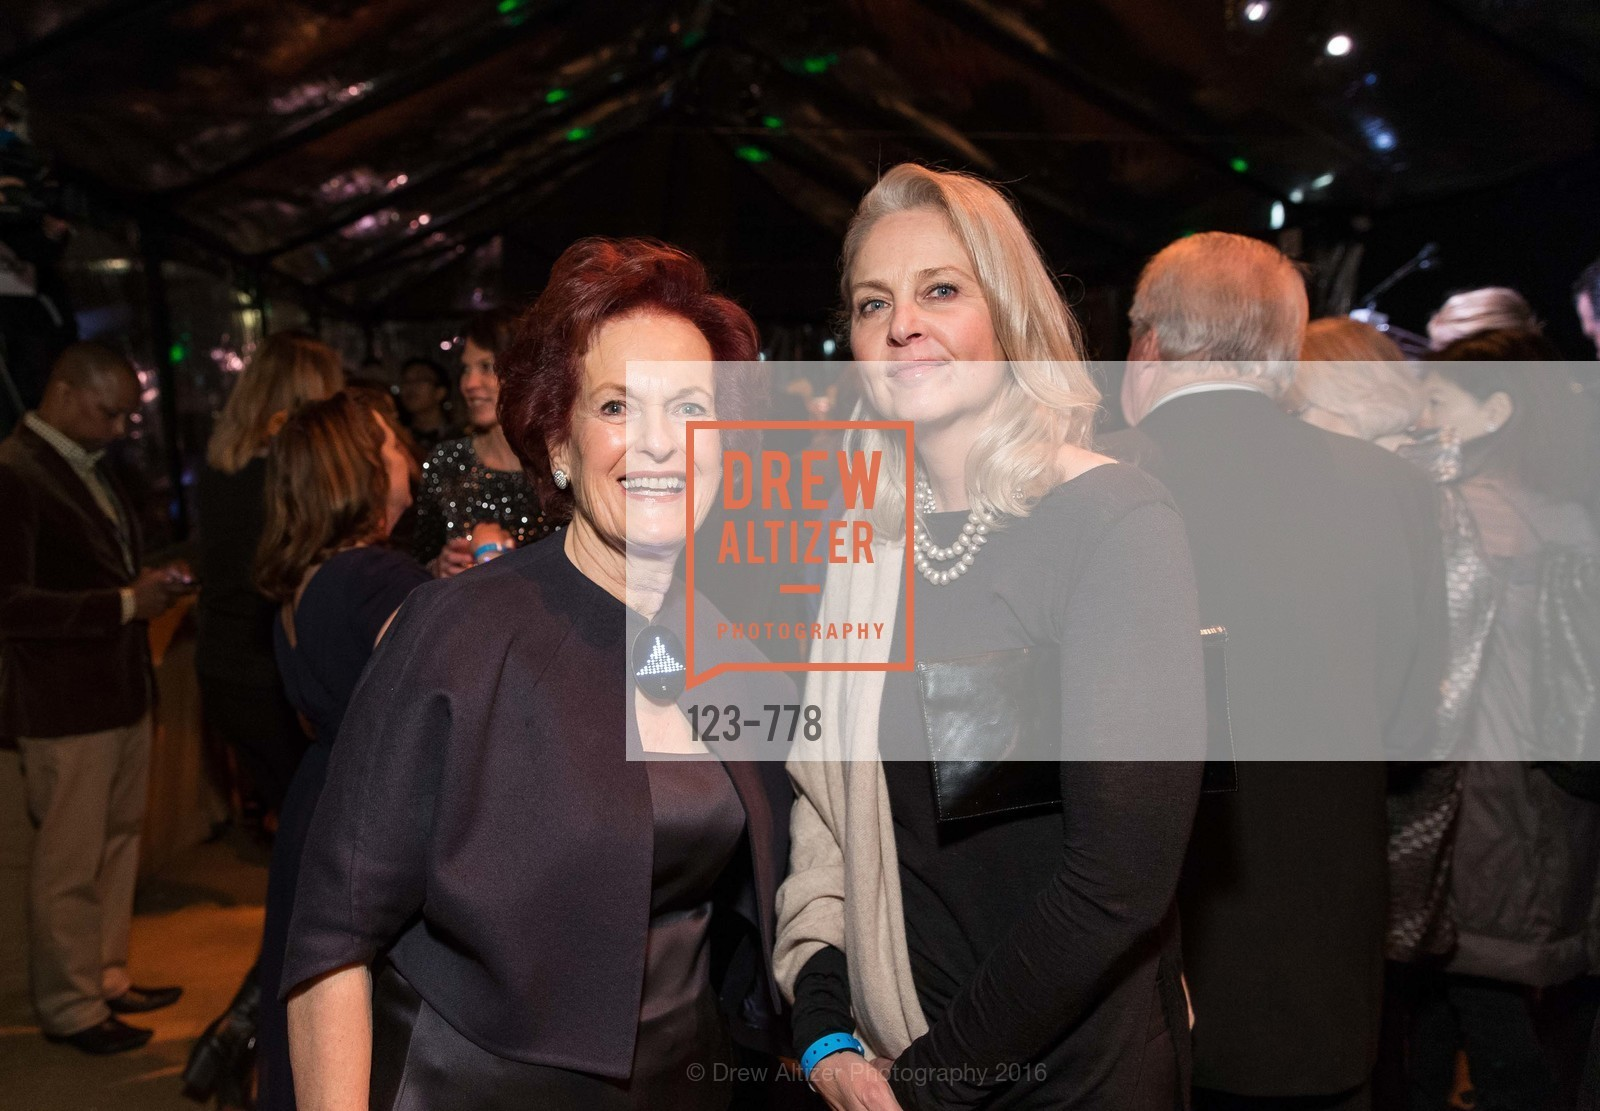 Helen Hilton Raiser, Catherine Hackworth, The Bay Lights Grand Relighting Celebration, Epic Steakhouse. 369 The Embarcadero, January 29th, 2016,Drew Altizer, Drew Altizer Photography, full-service agency, private events, San Francisco photographer, photographer california